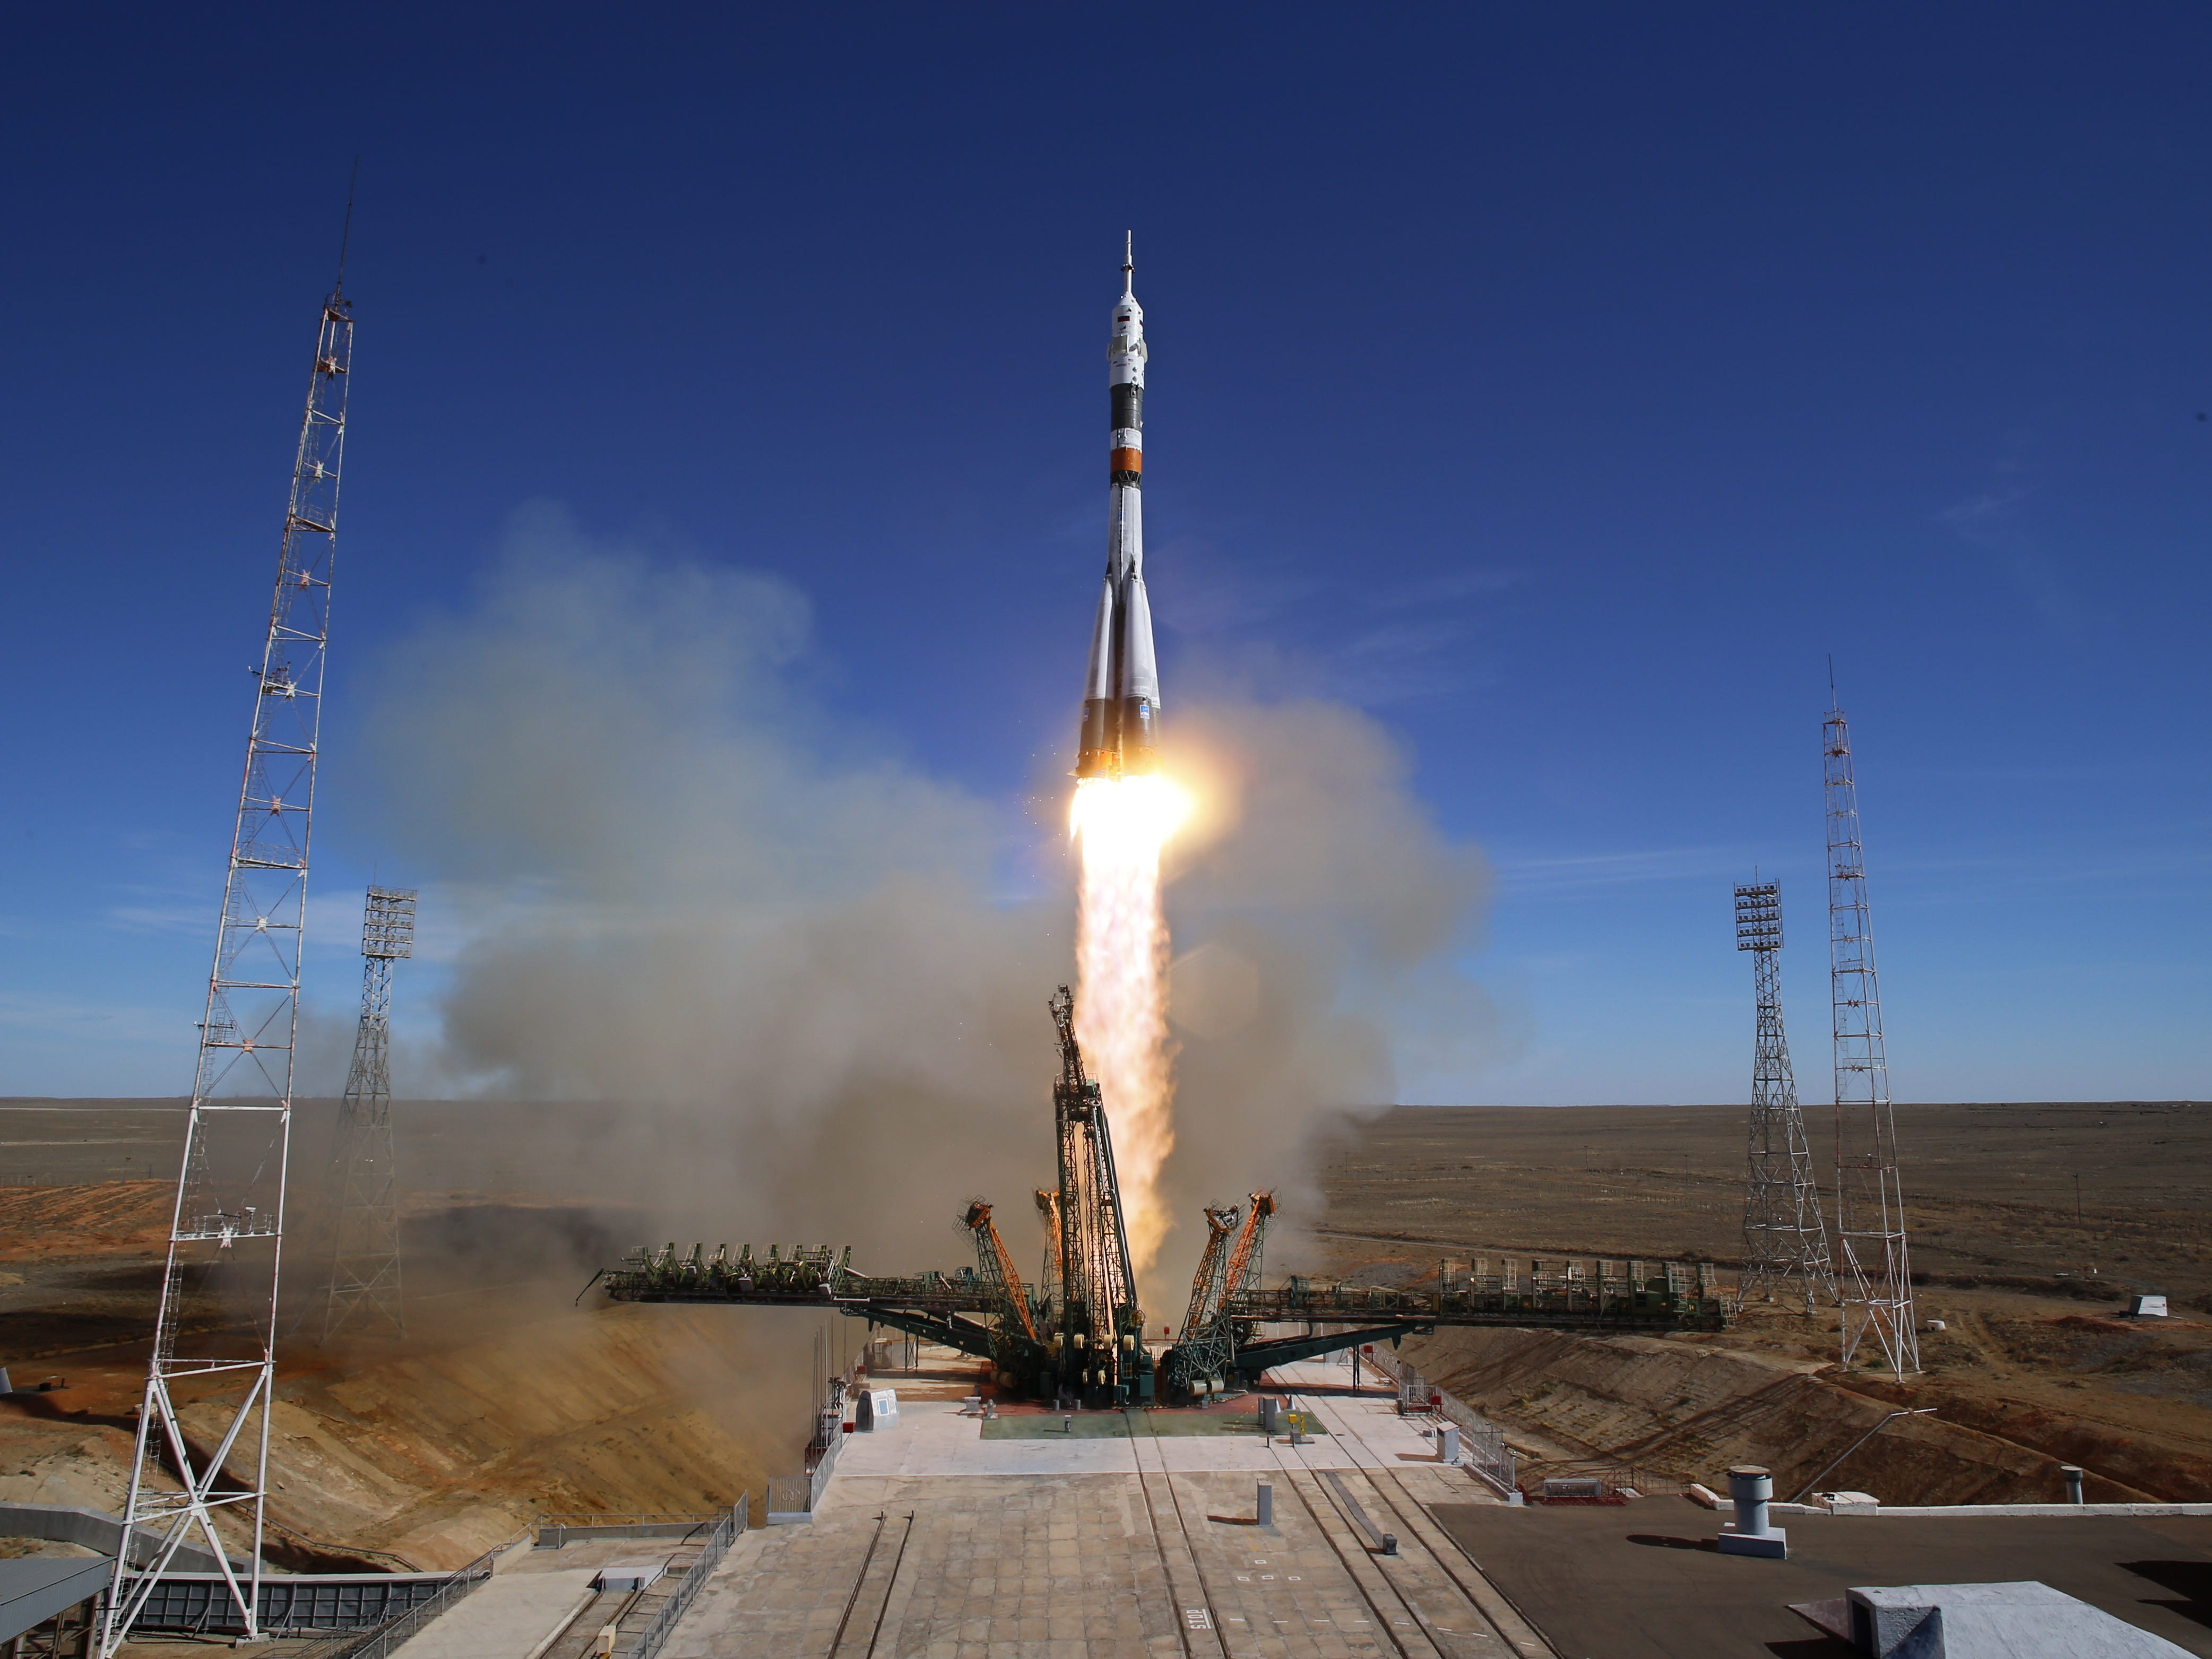 epa07085593 Soyuz booster rocket with the Soyuz MS-10 spacecraft carrying crew members expedition 57/58, Roscosmos cosmonaut Alexey Ovchinin and NASA astronaut Nick Hague to the International Space Station (ISS) takes off from the launch pad at the Russian leased Baikonur cosmodrome, Kazakhstan, 11 October 2018. The Russian Soyuz rocket has malfunctioned on lift-off and has landed safely in Kazahstan, Russian media report.  EPA-EFE/YURI KOCHETKOV ORG XMIT: koch45